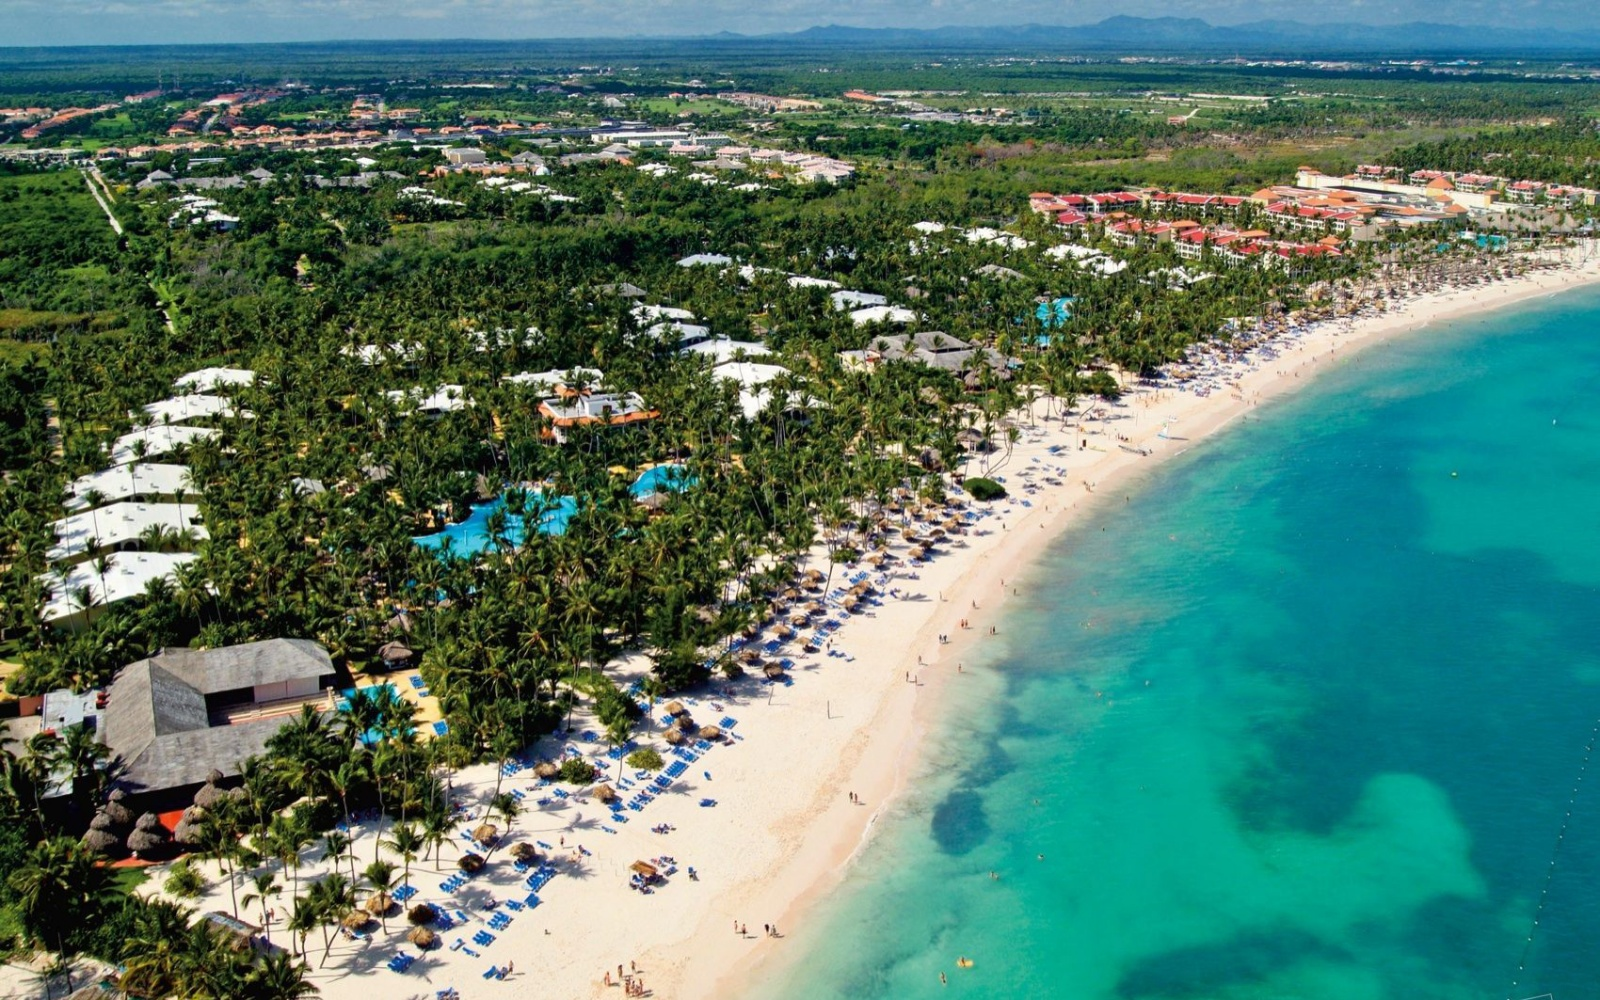 Melia Caribe Tropical all-inclusive Punta Cana, DR